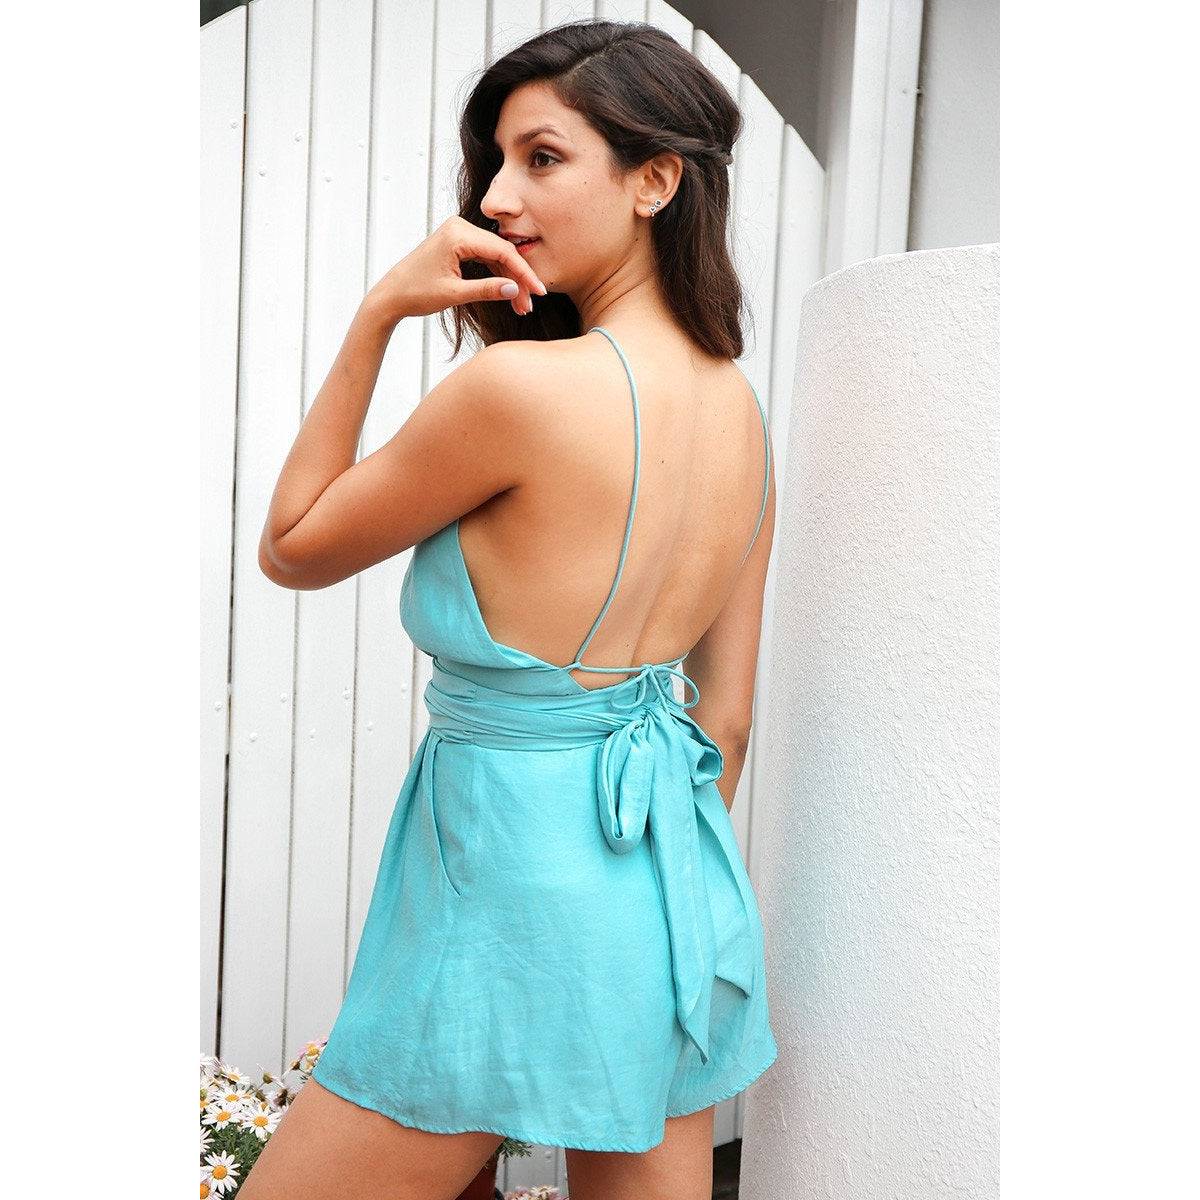 The Alexandria Halter Romper is a cute, thin strap, backless jumpsuit with a keyhole chest, and a bow tie in the back for a feminine touch. Gray and seafoam blueish-green.